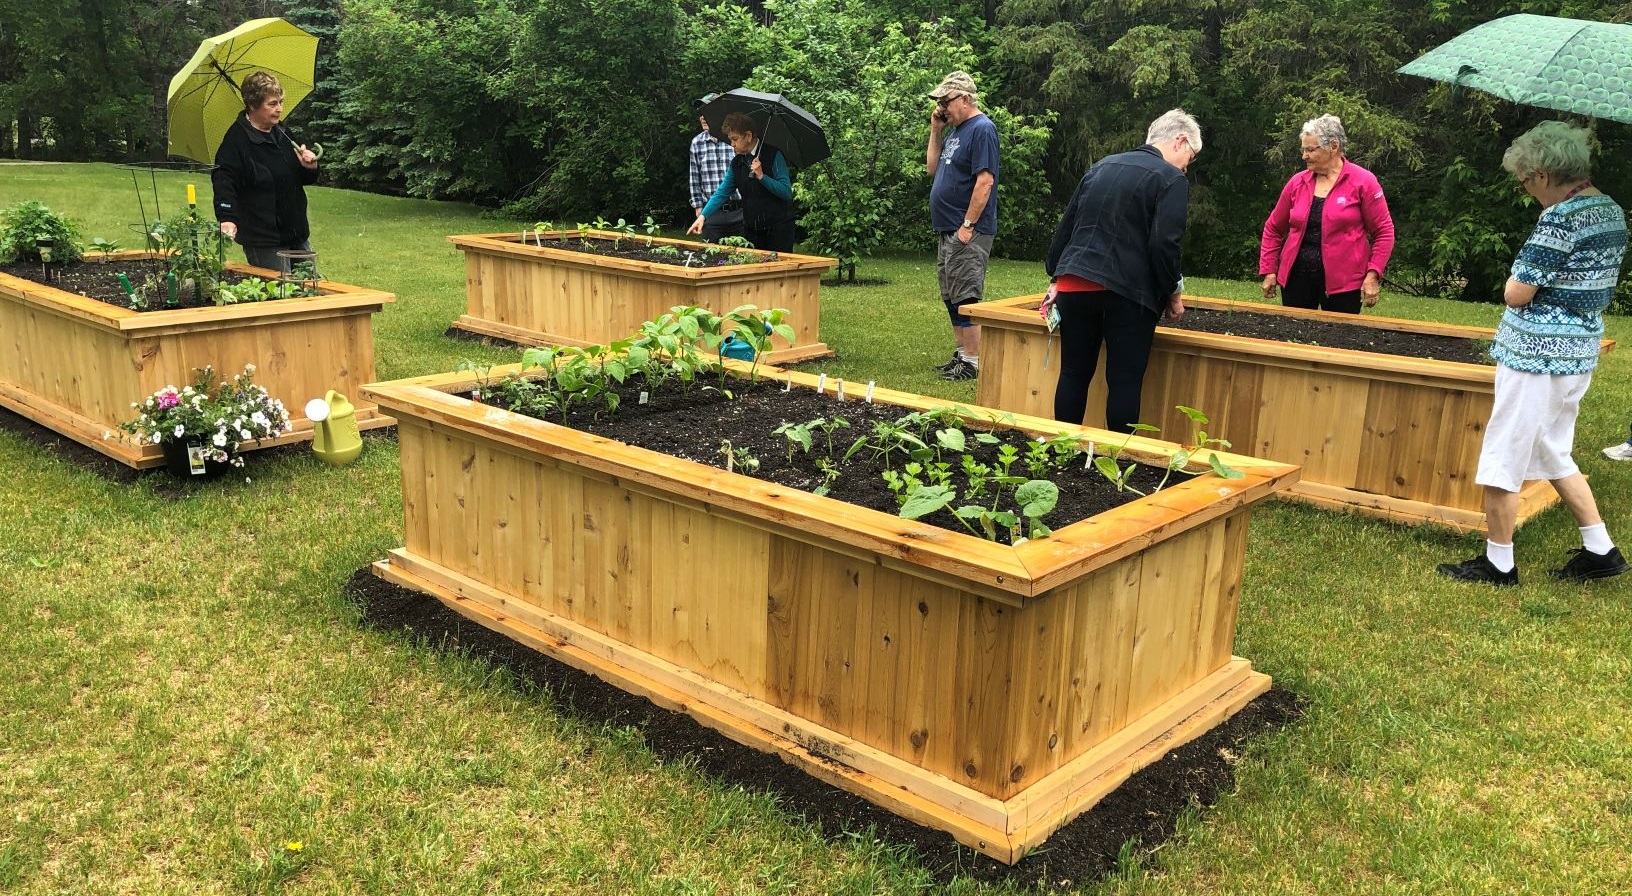 Co-op community garden becomes a community gathering place